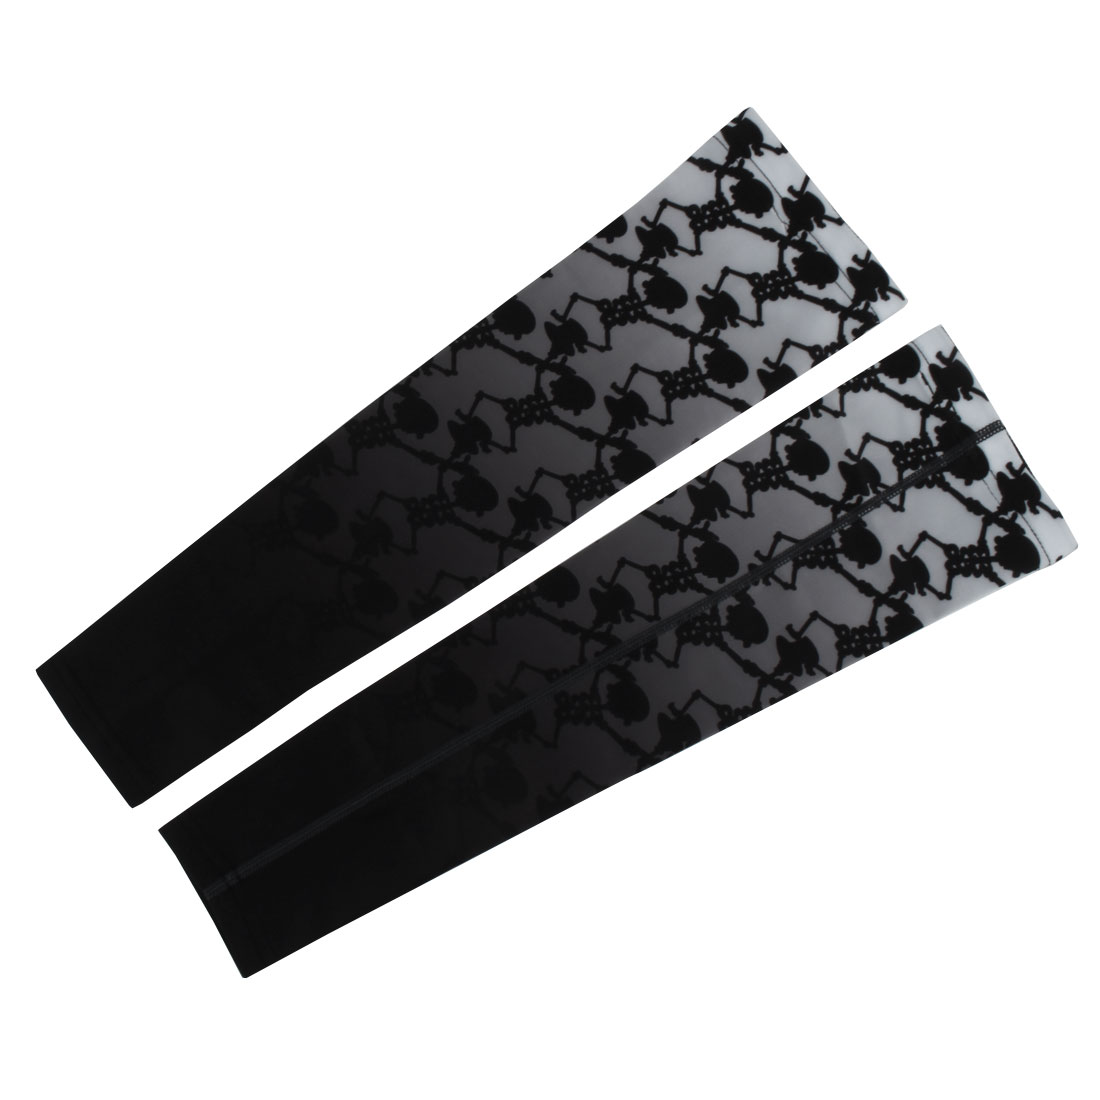 XINTOWN Authorized Unisex Cycling Football Arm Sleeves Cover Warmer #8 3XL Pair by Unique-Bargains